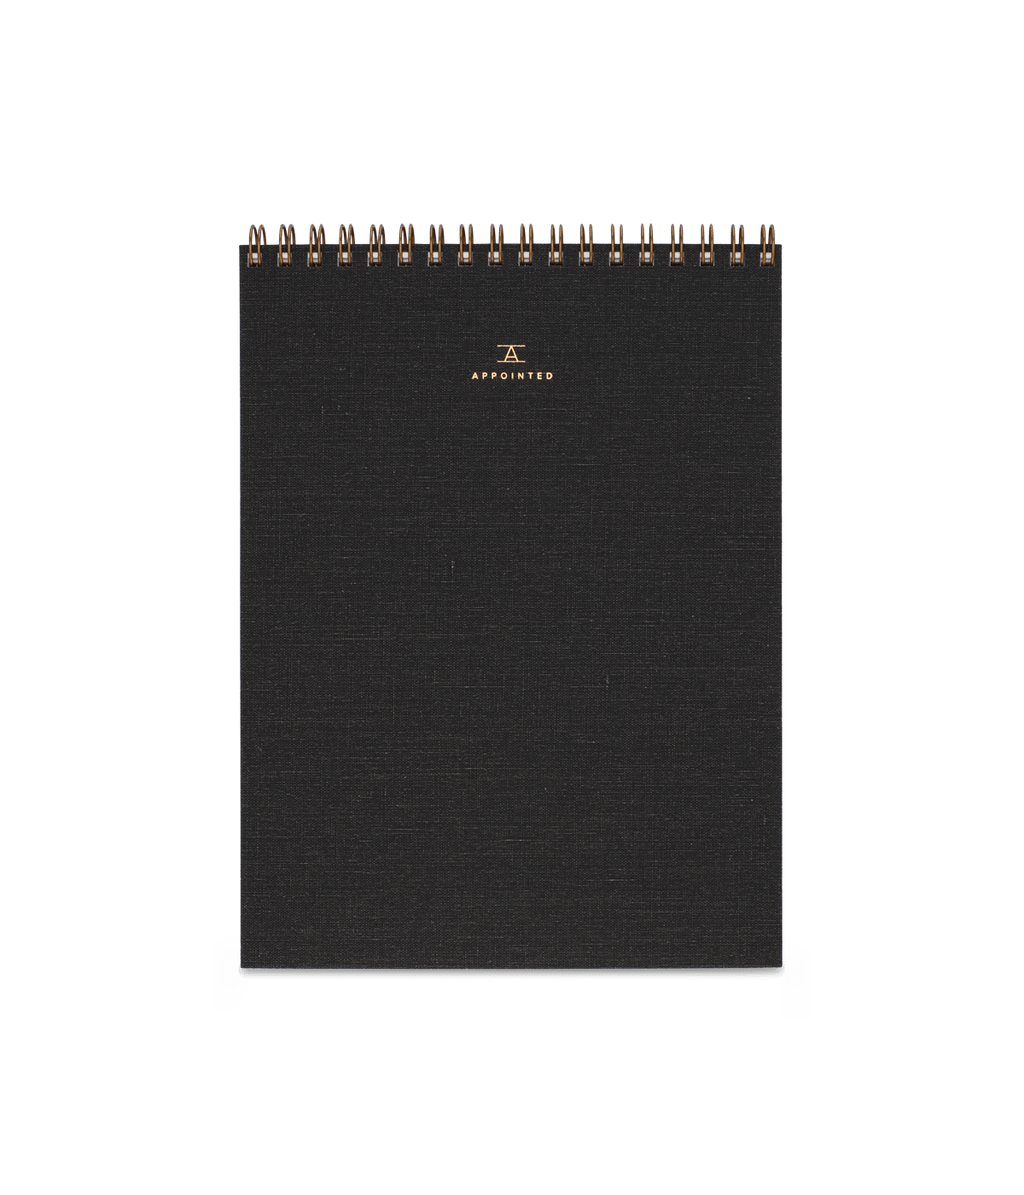 Appointed Office Notepad in Charcoal Grey